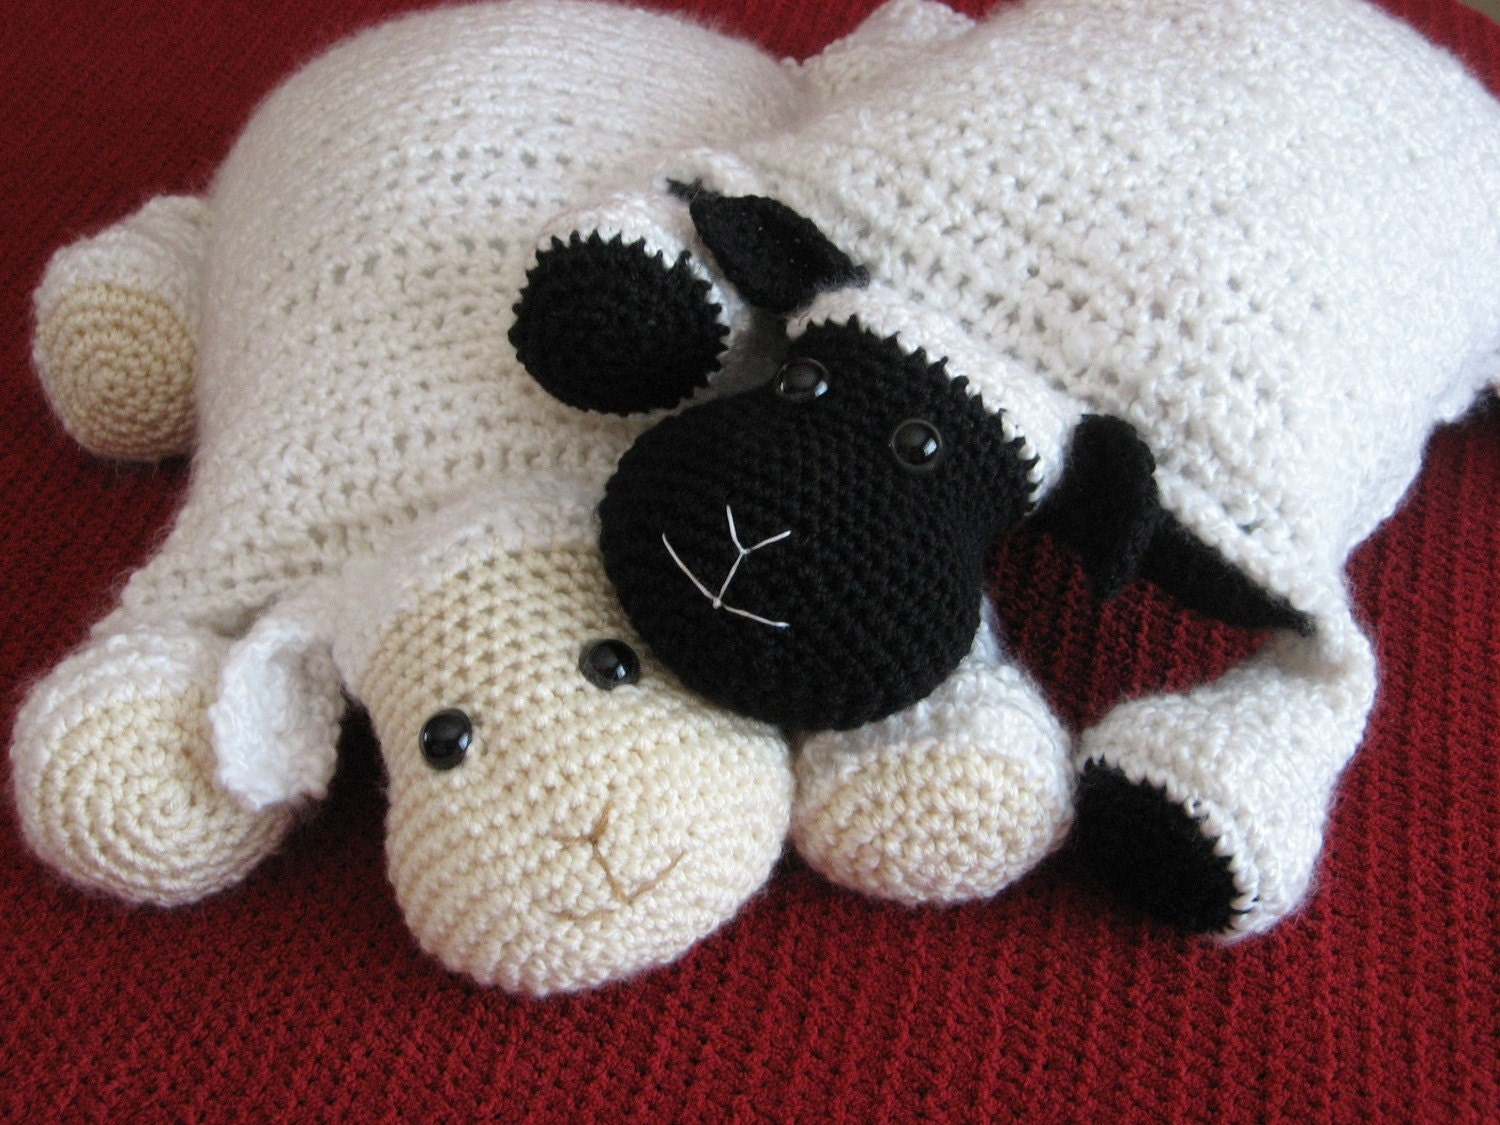 Crochet Pattern For Baby Lamb Hat : Crochet Lamb Cute and Cuddley Crochet Critter Pillow Crochet